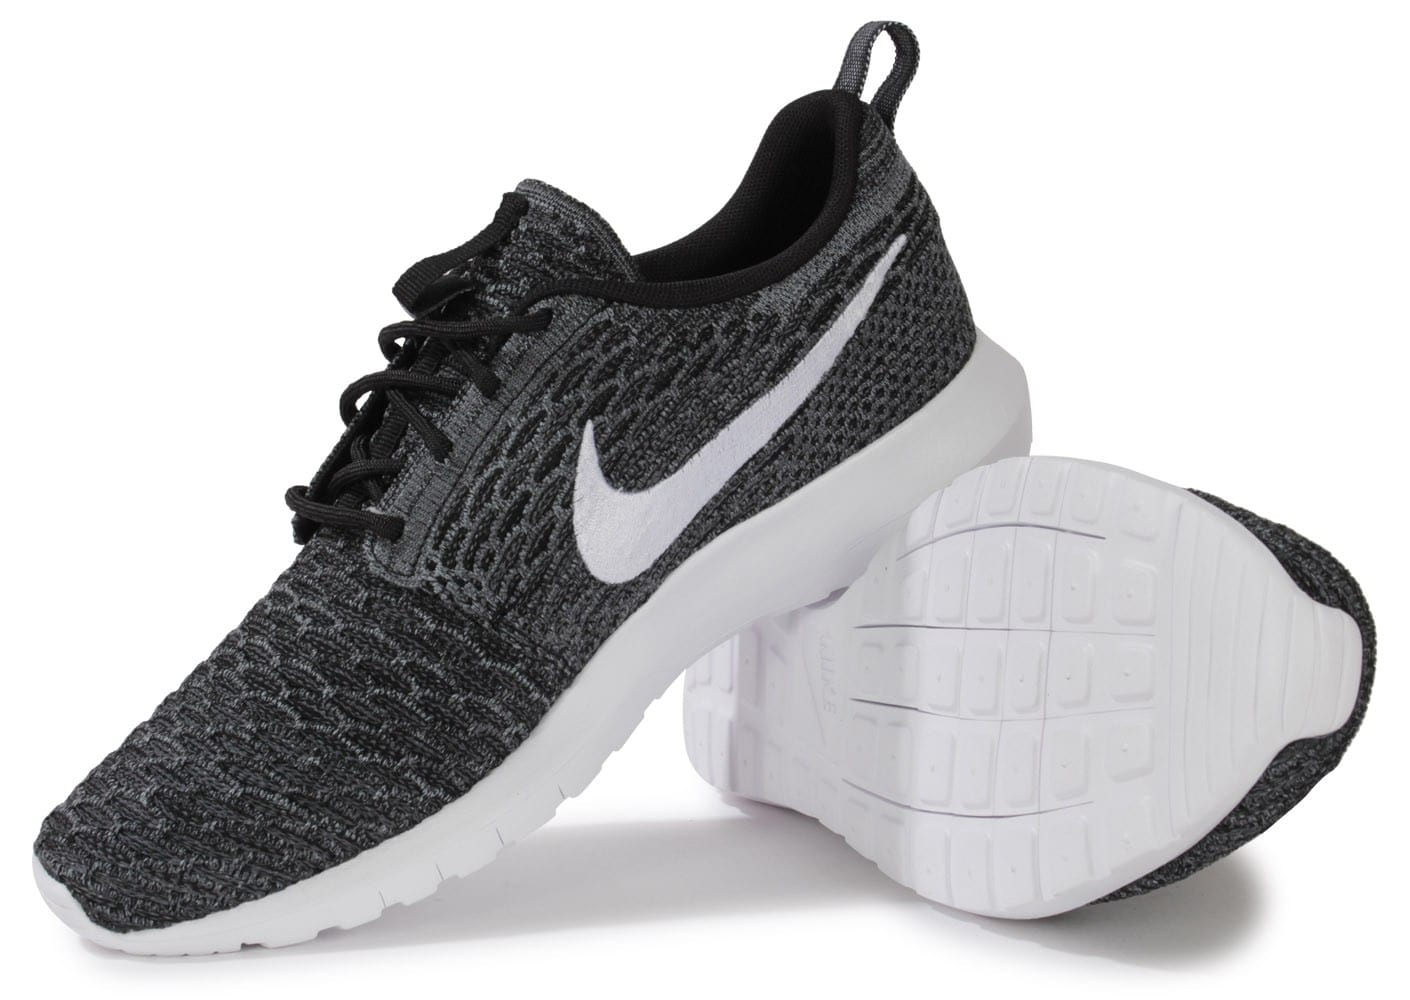 nike roshe run flyknit noire et blanche chaussures baskets homme chausport. Black Bedroom Furniture Sets. Home Design Ideas